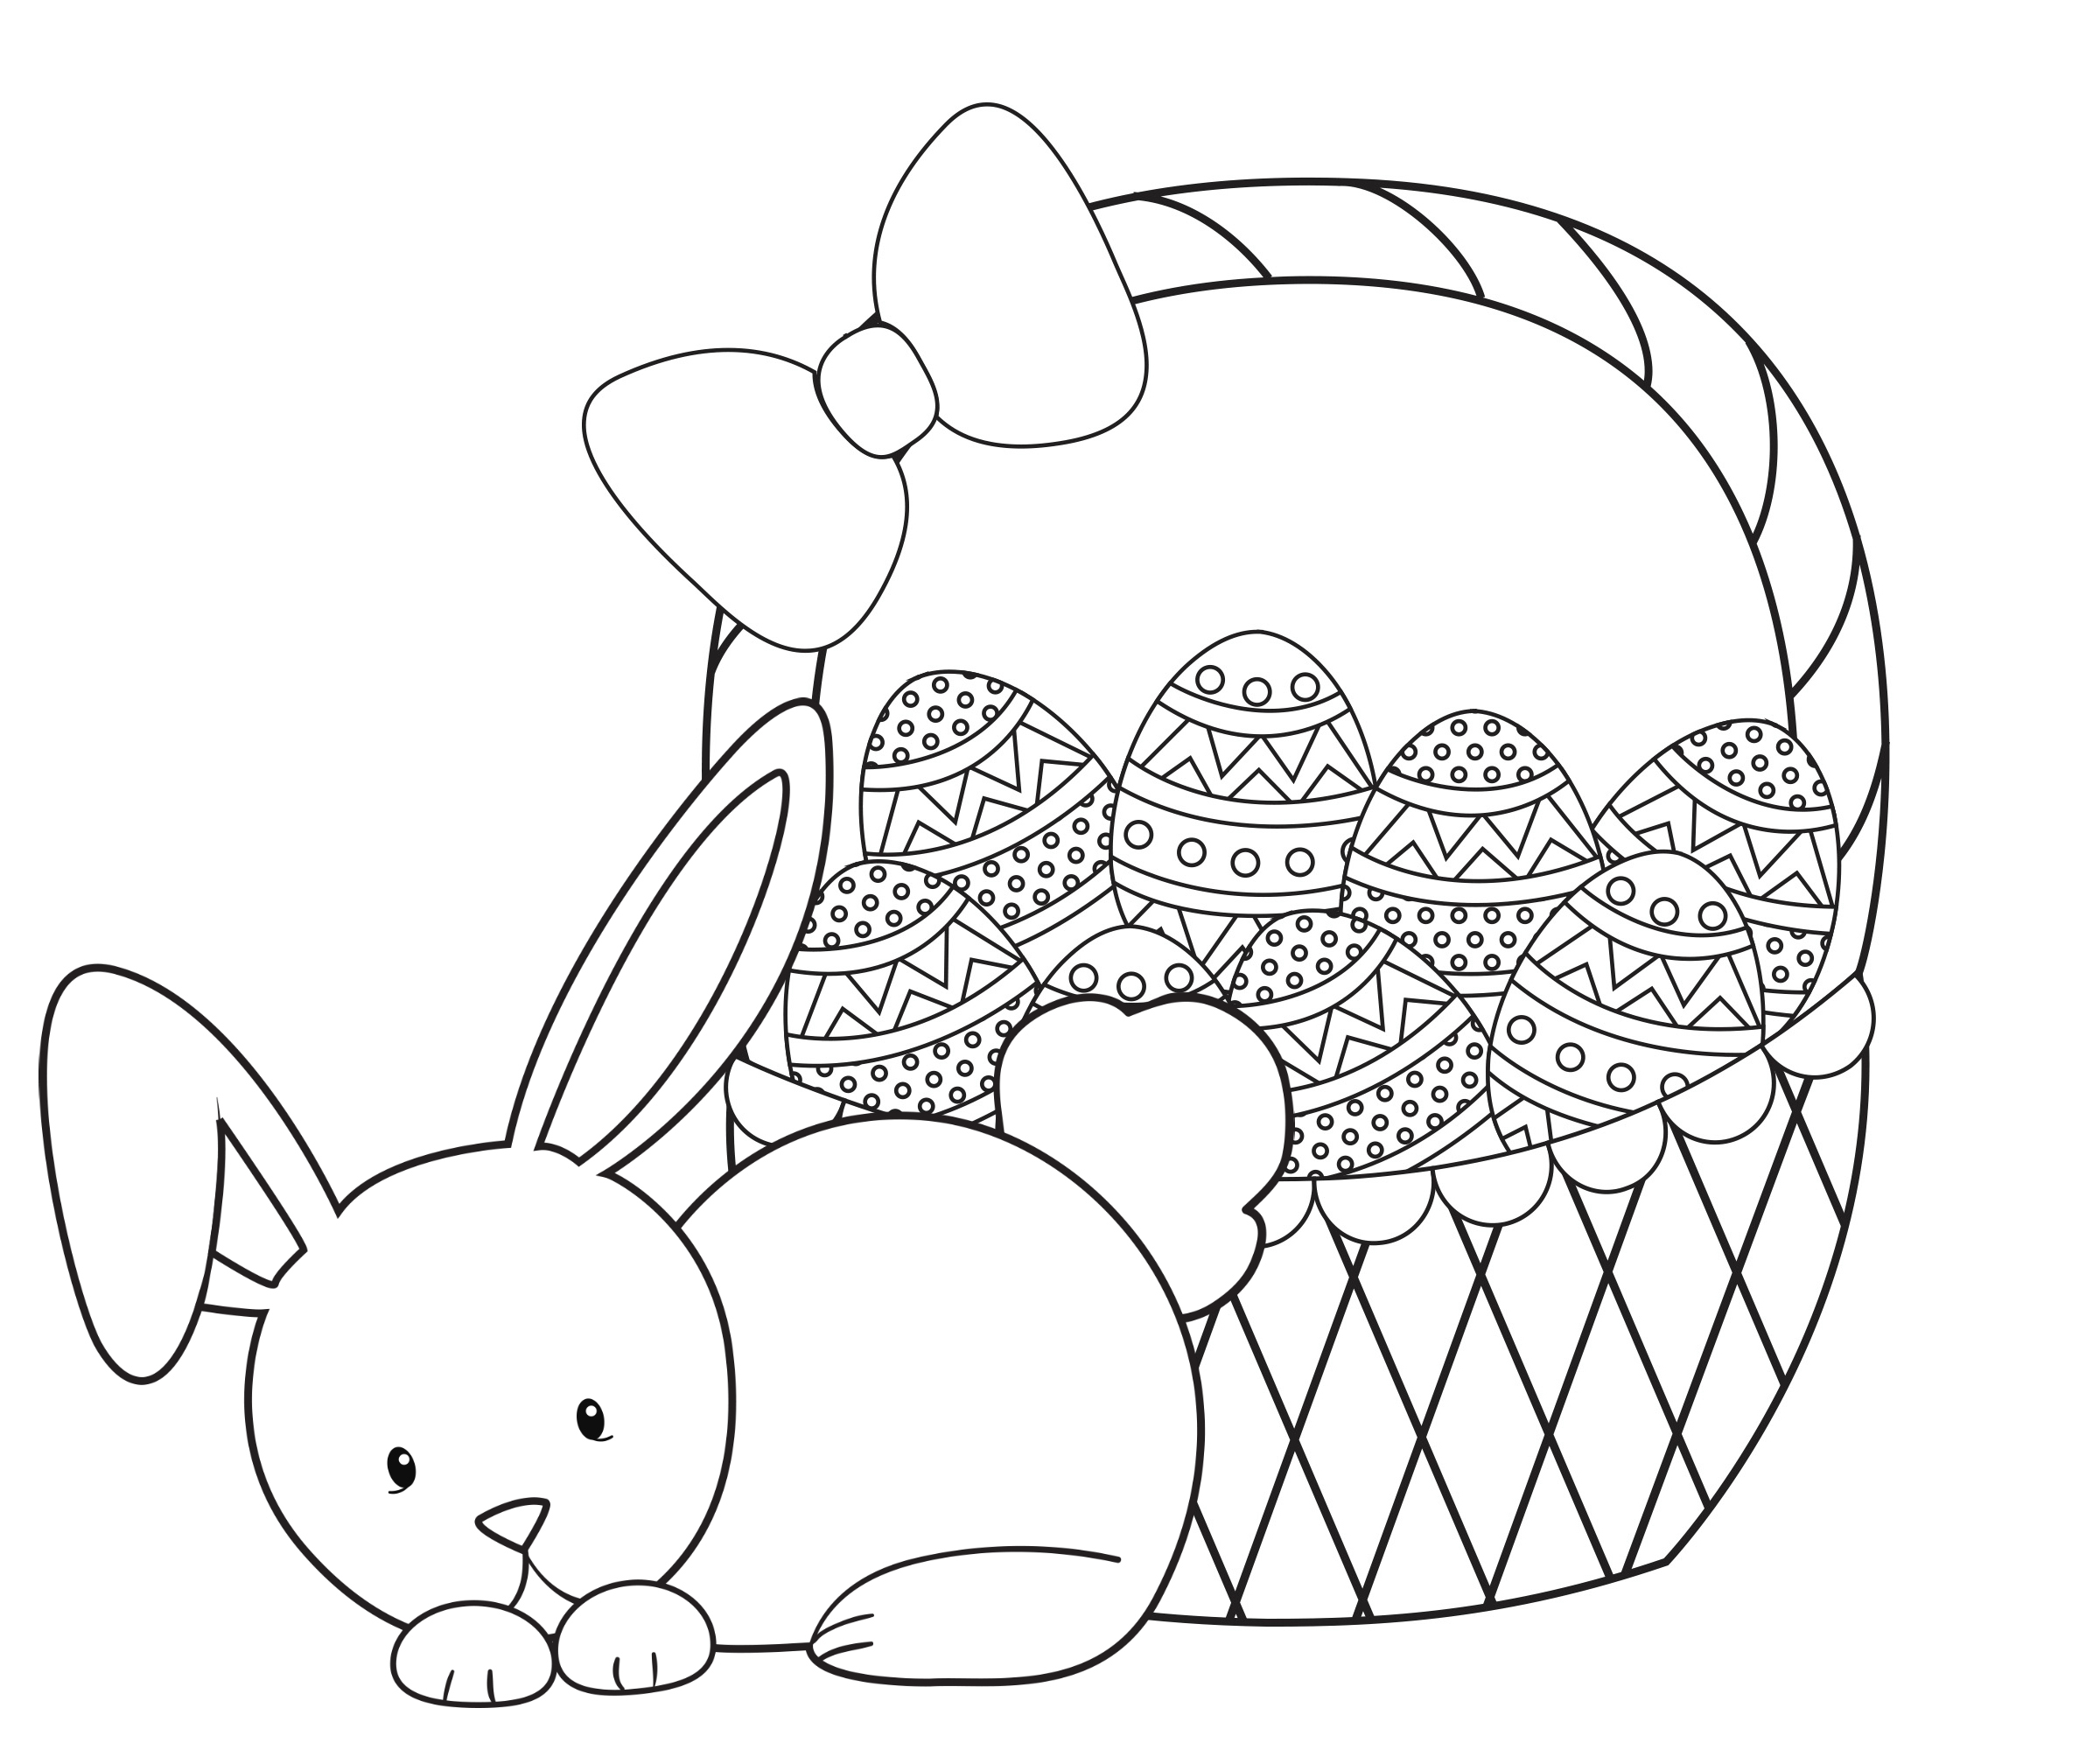 coloring book pages for easter - photo#13